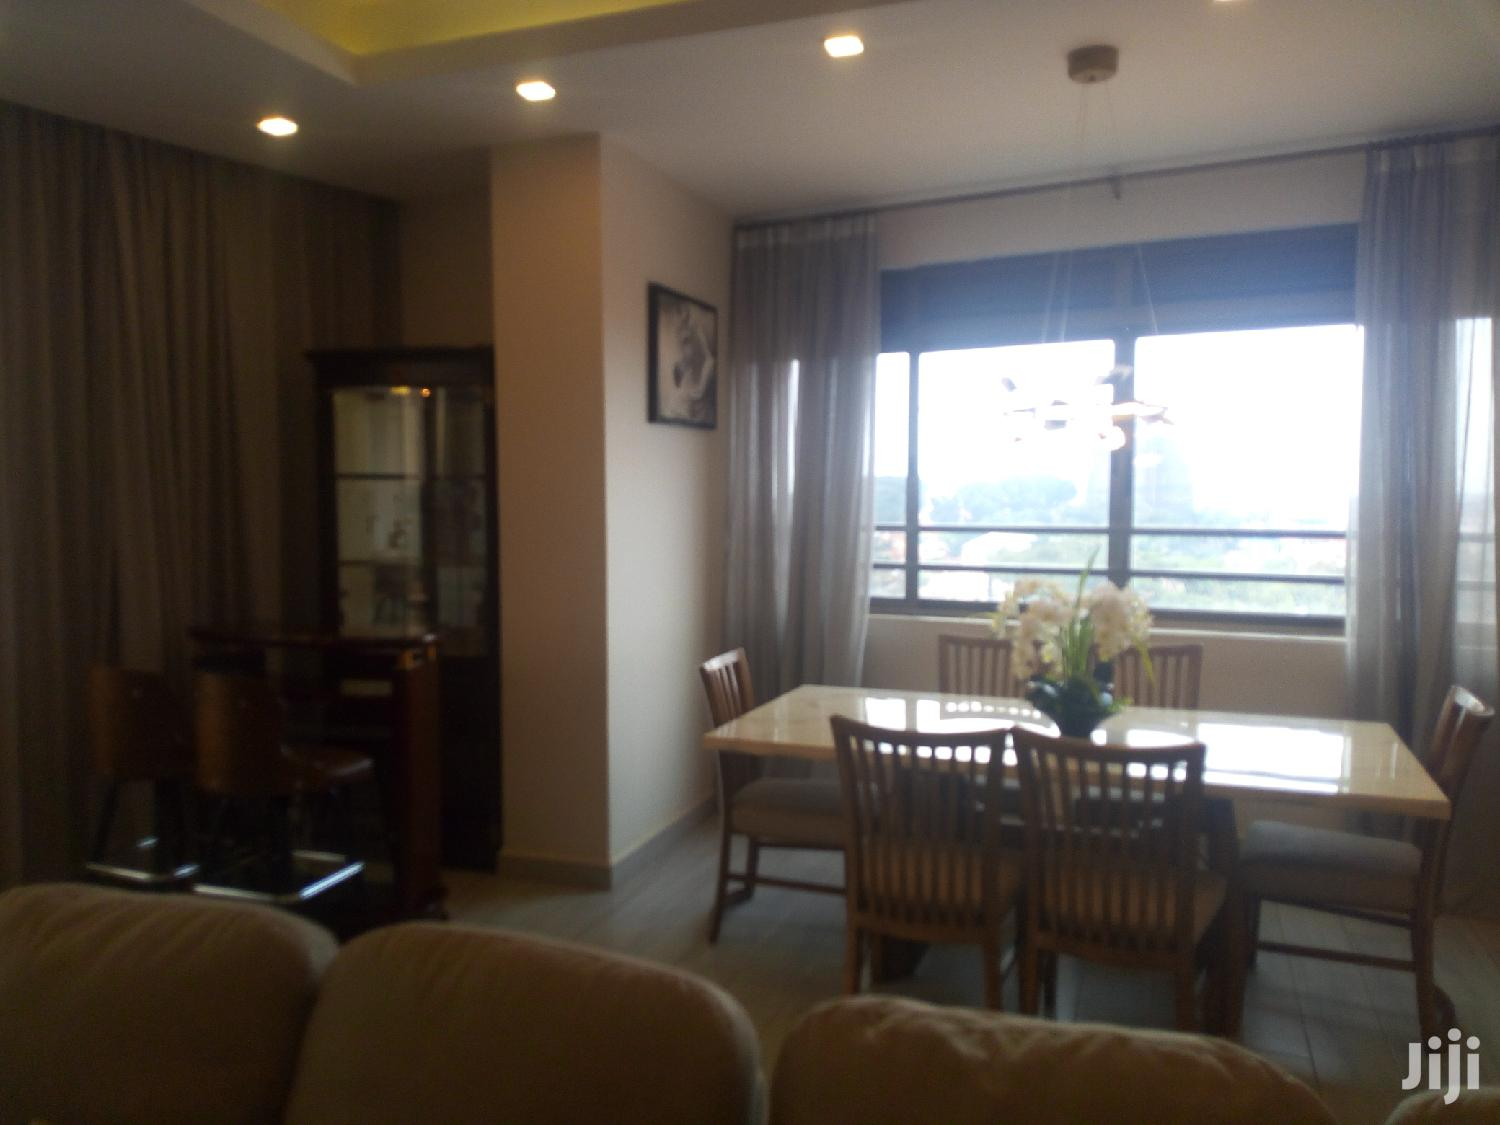 3 Bedroom Fully Furnished Apartment In Naguru For Rent | Houses & Apartments For Rent for sale in Kampala, Central Region, Uganda